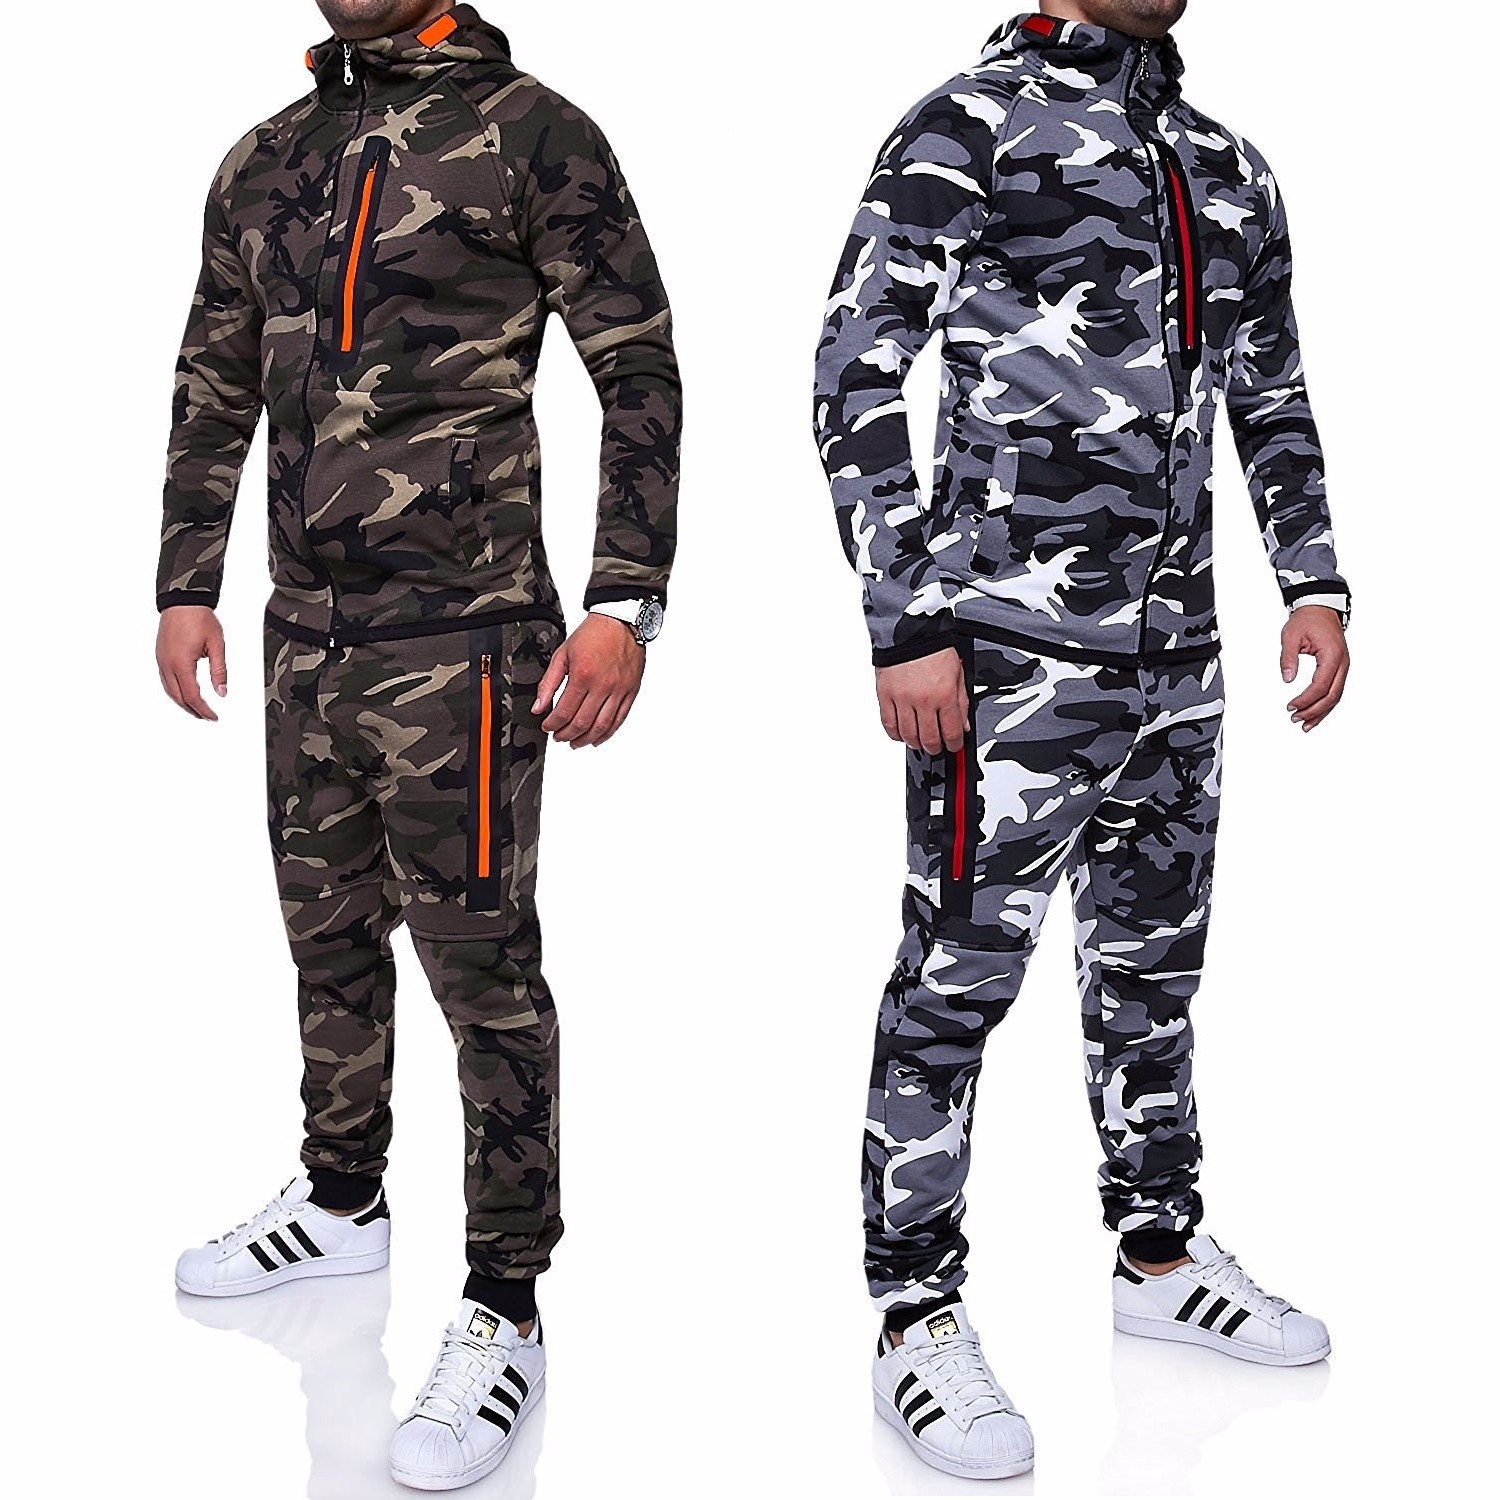 Hot Sales-Spring And Autumn New Style Sports MEN'S Wear Hooded Camouflage MEN'S Suit